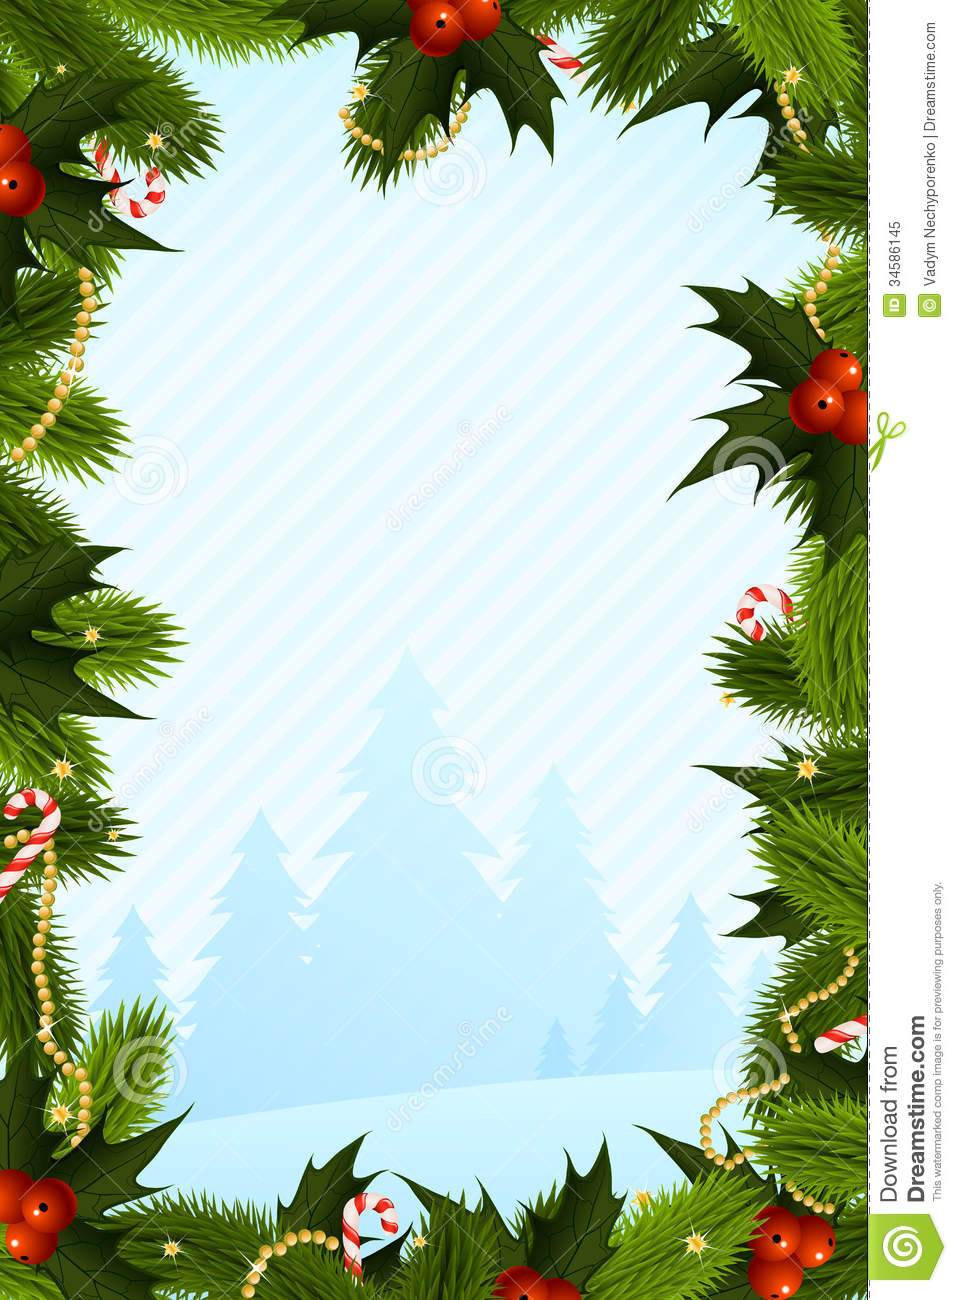 Christmas Card Template Stock Vector Illustration Of Shape - Christmas postcard template